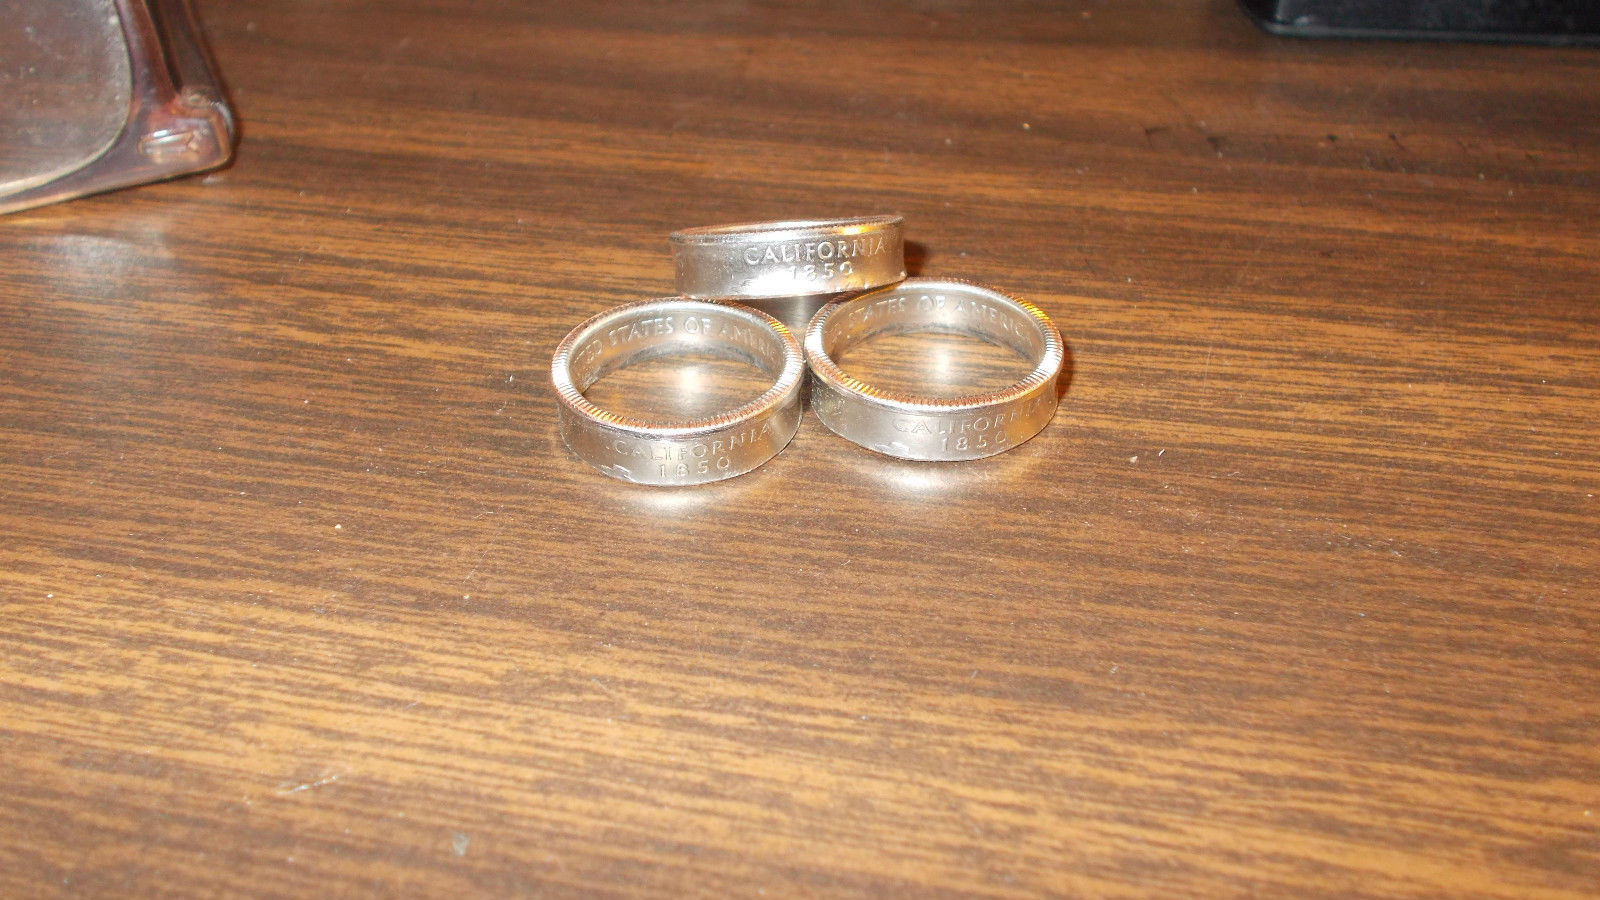 2d3bc406a Calif 2 sided coin ring sizes 5 1 2 - 10 and 10 similar items